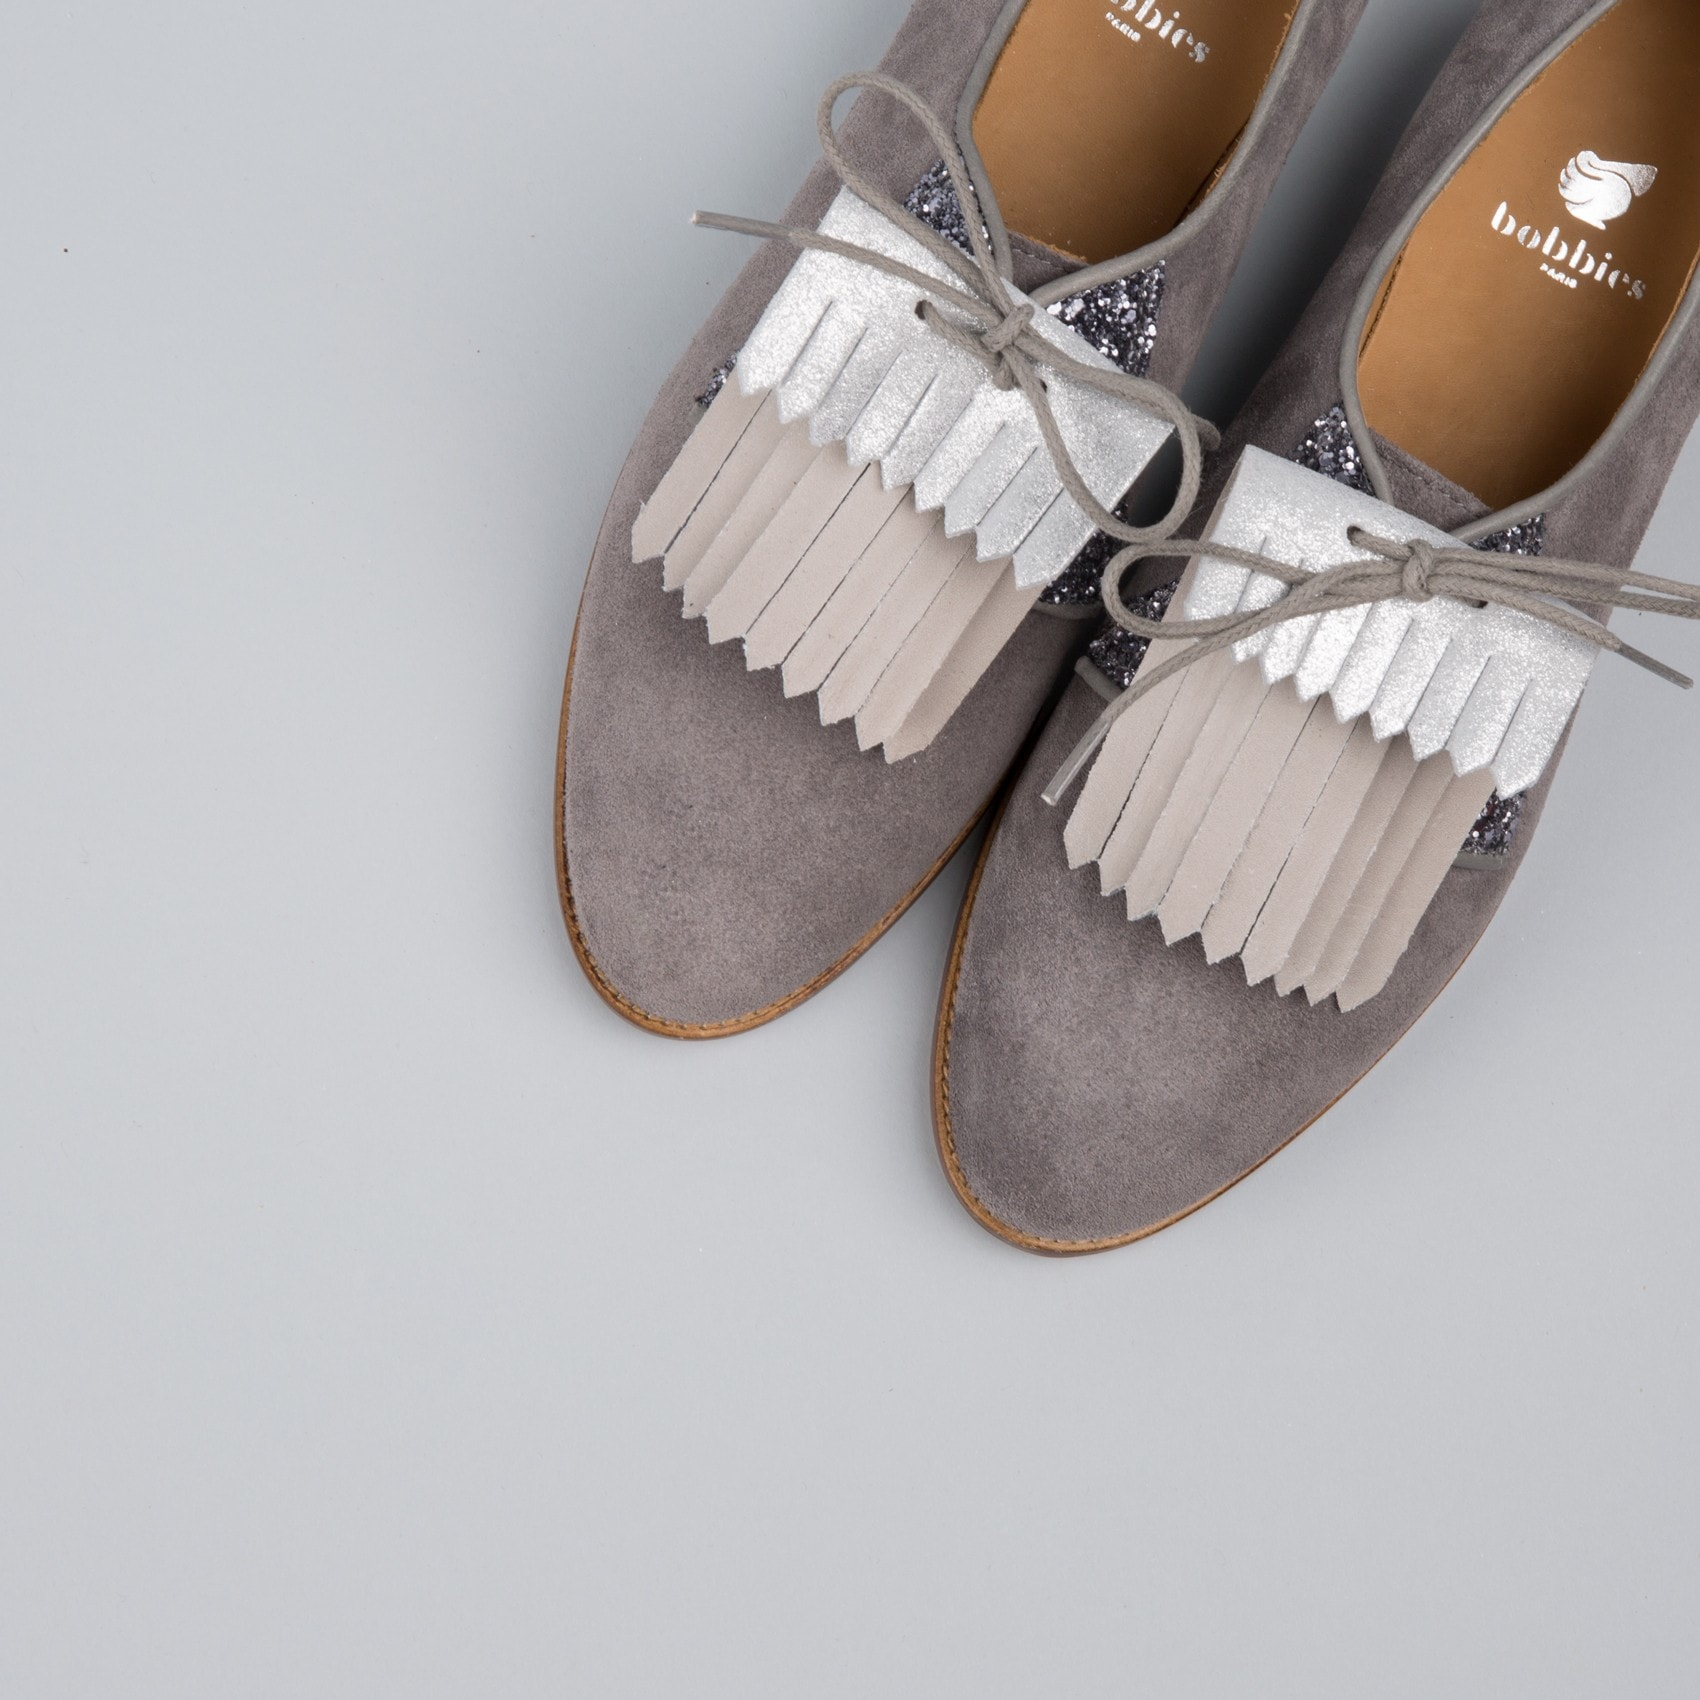 French Brand Aurelie Chadaine Franginettes Shoes OuiPlease OuiBlog